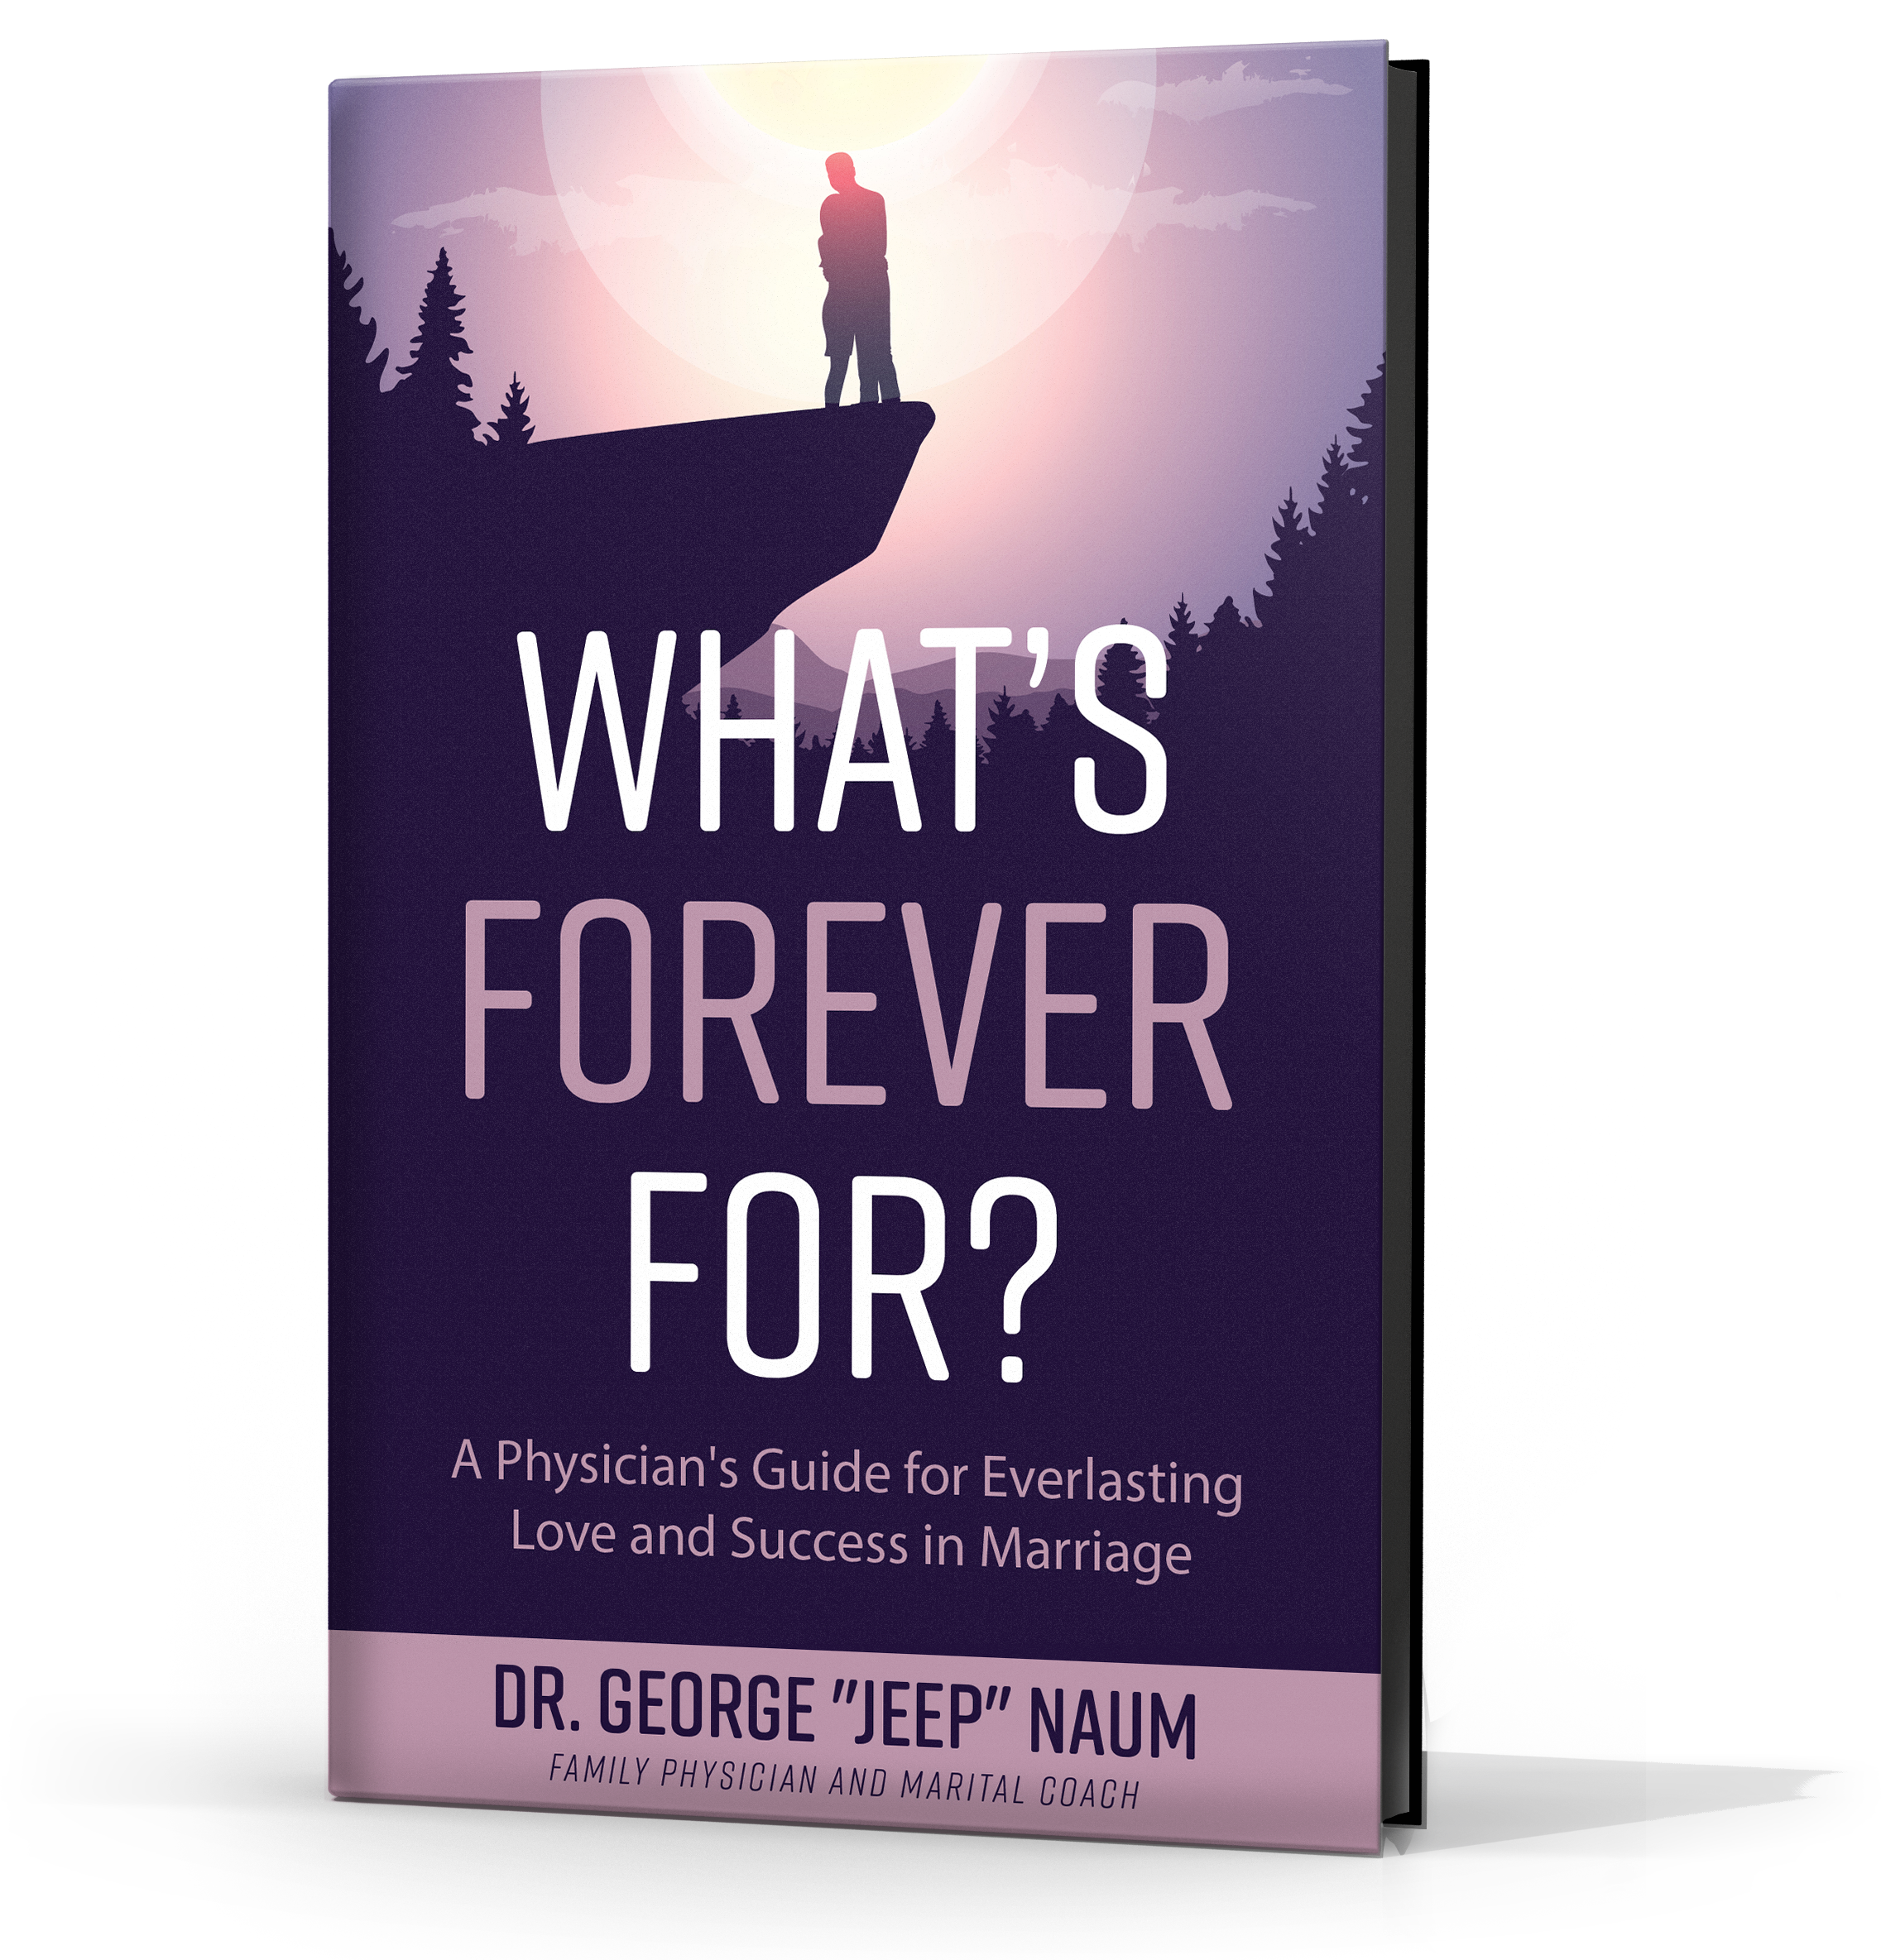 Physician and Bestselling Author Releases Guide to Give Spouses the Keys to Marriage Success